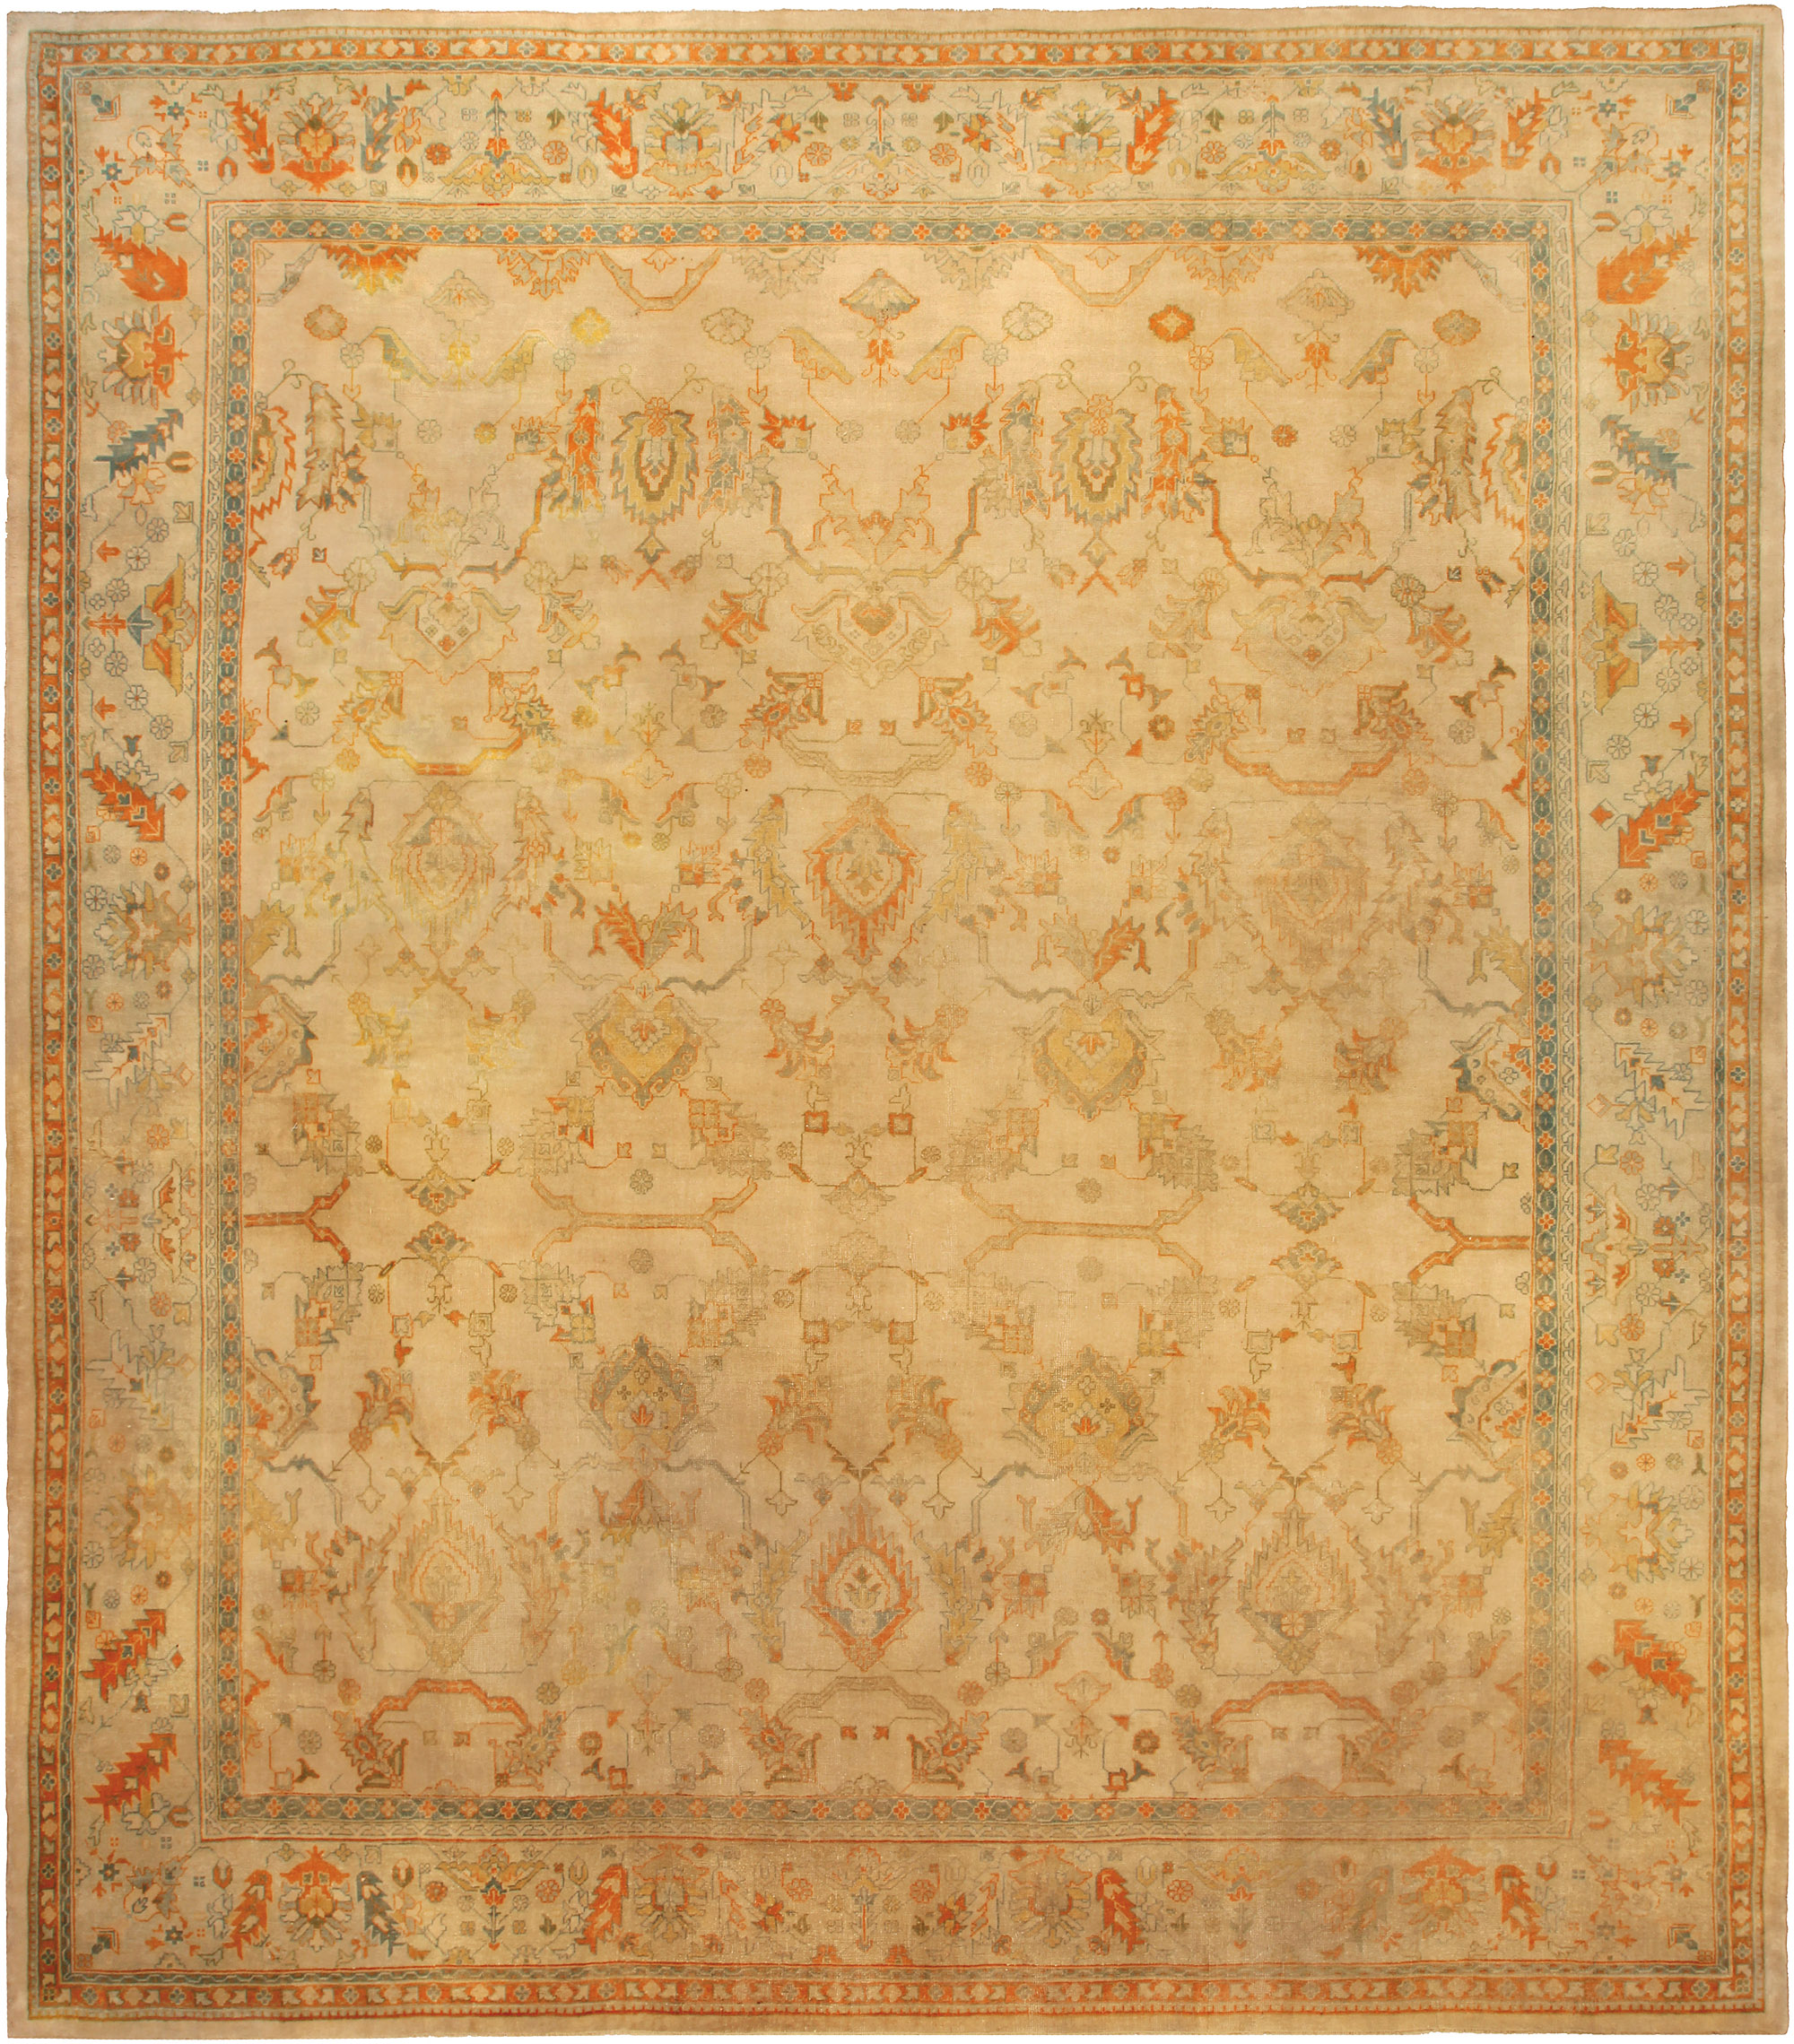 Antique Turkish Oushak Rug (size adjusted) BB5155